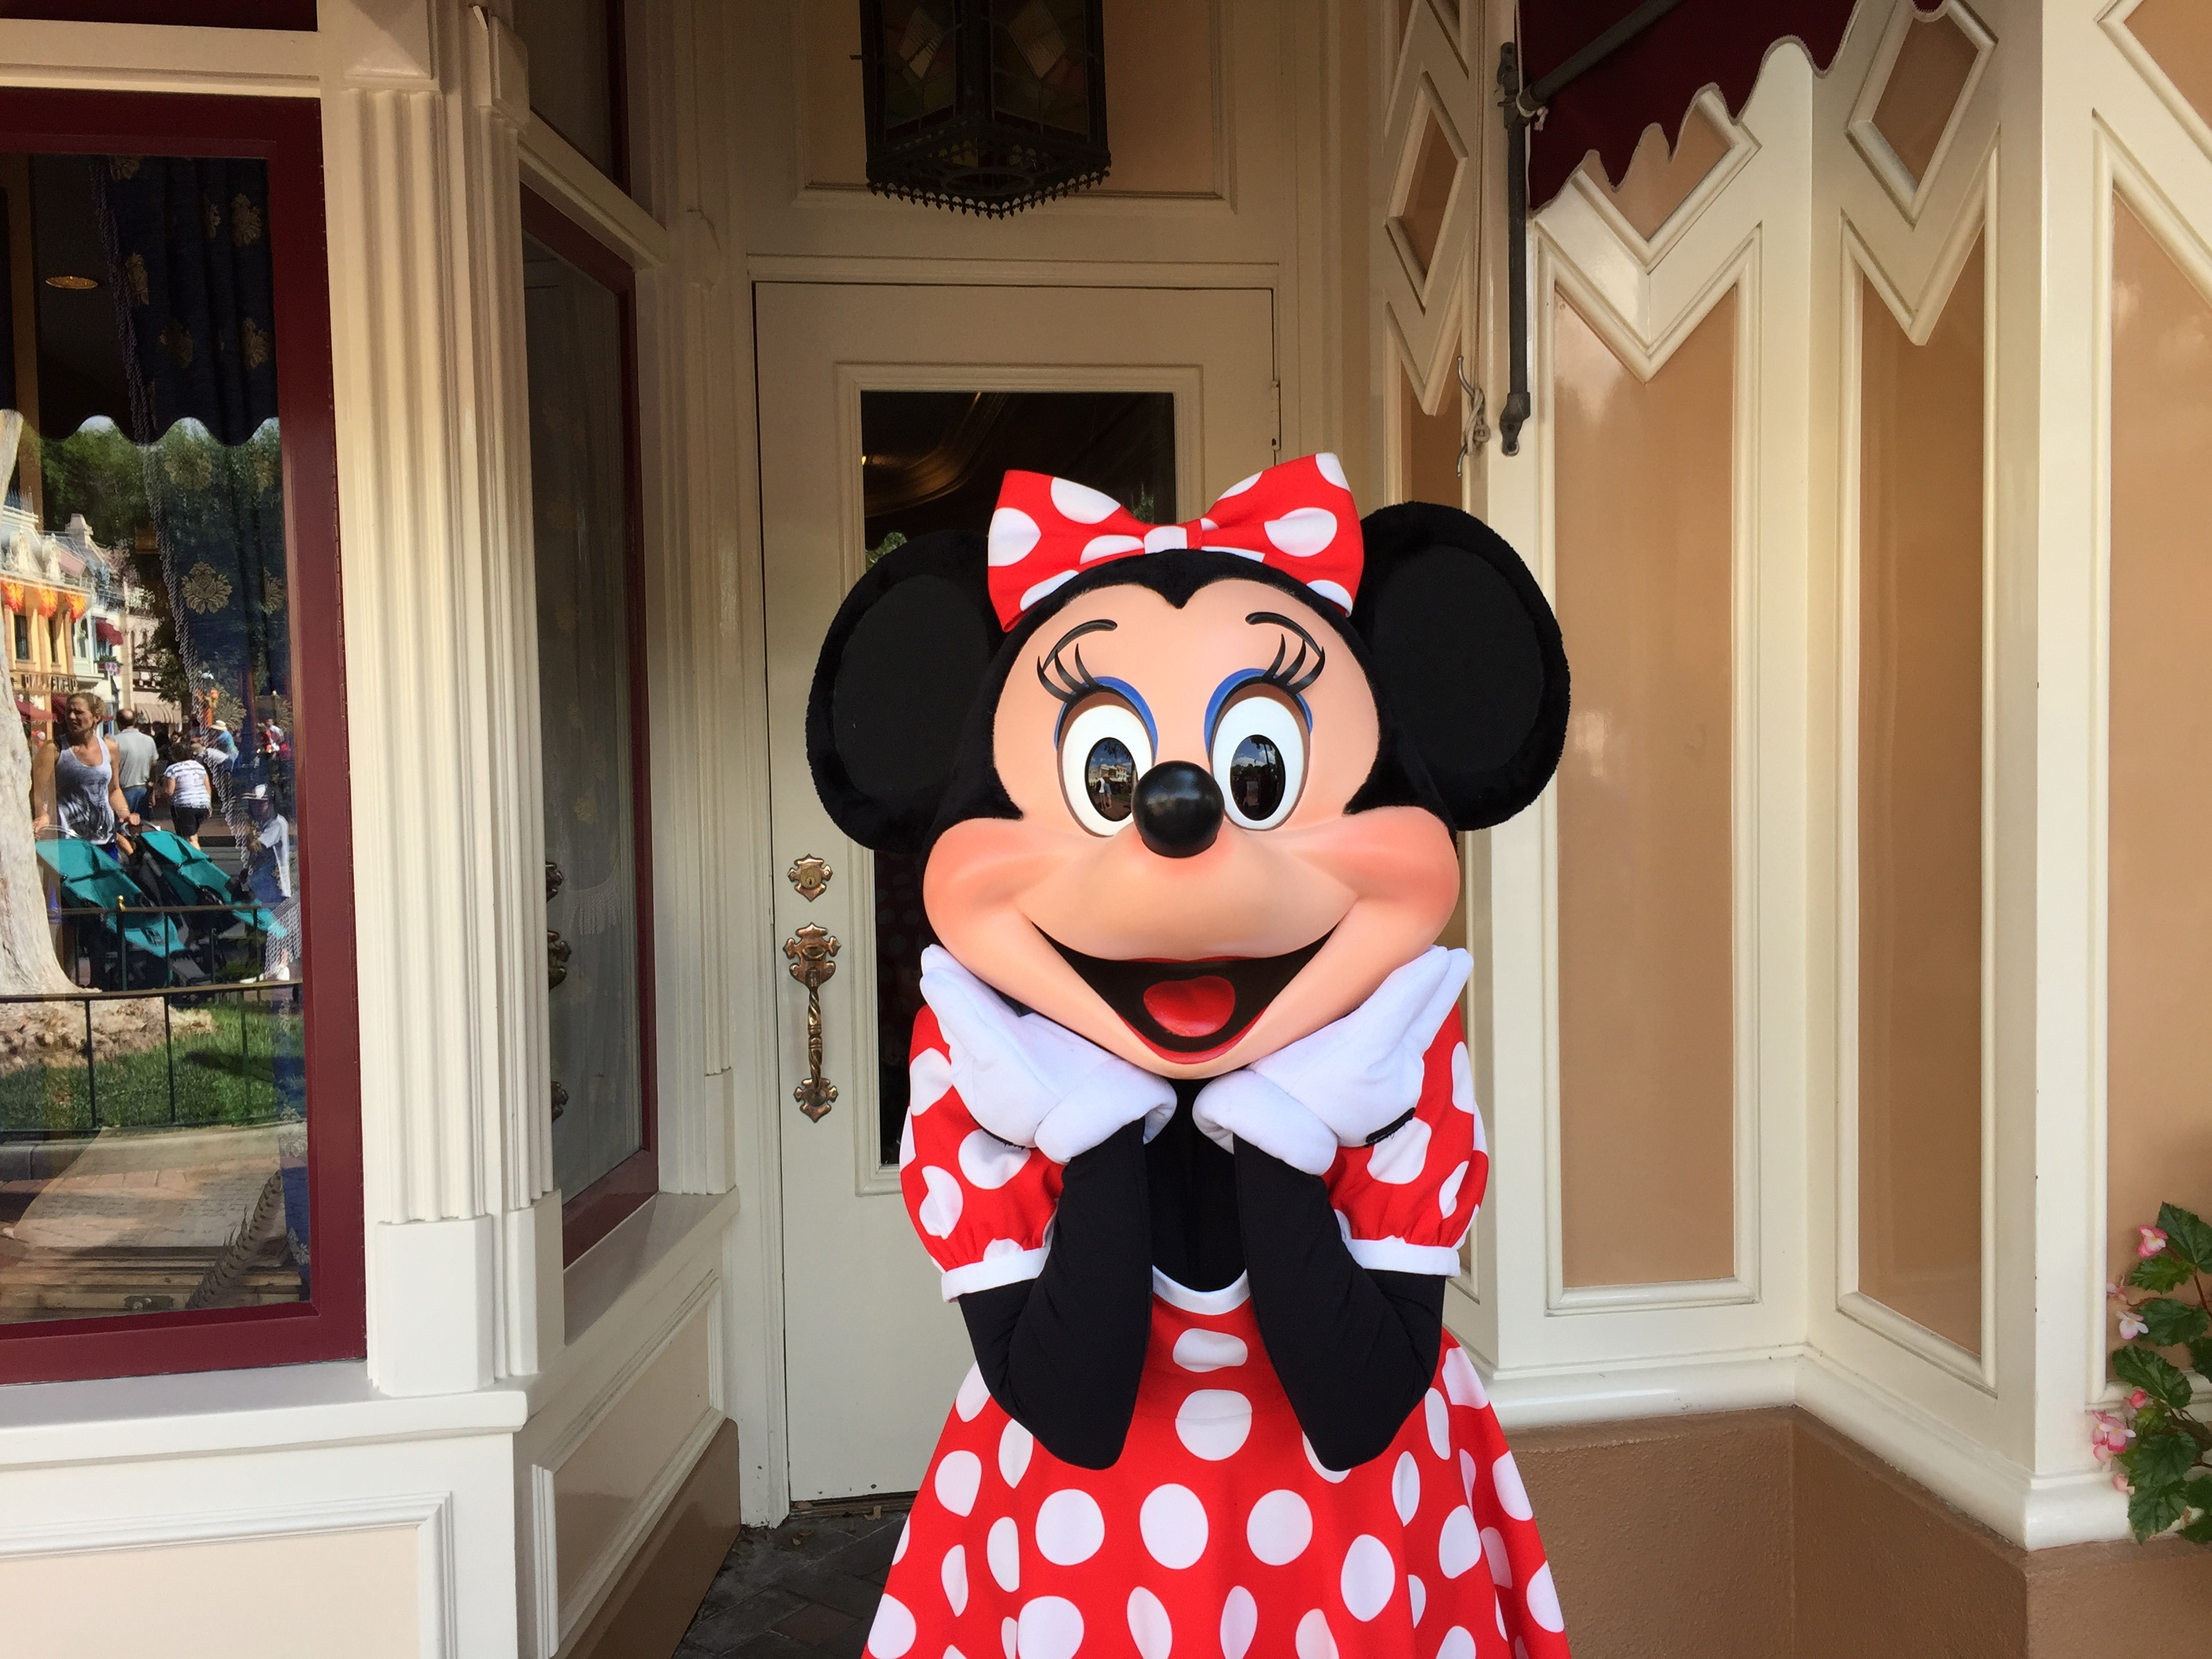 Dining Review of Character Breakfast with Minnie and Friends at the Plaza Inn at Disneyland